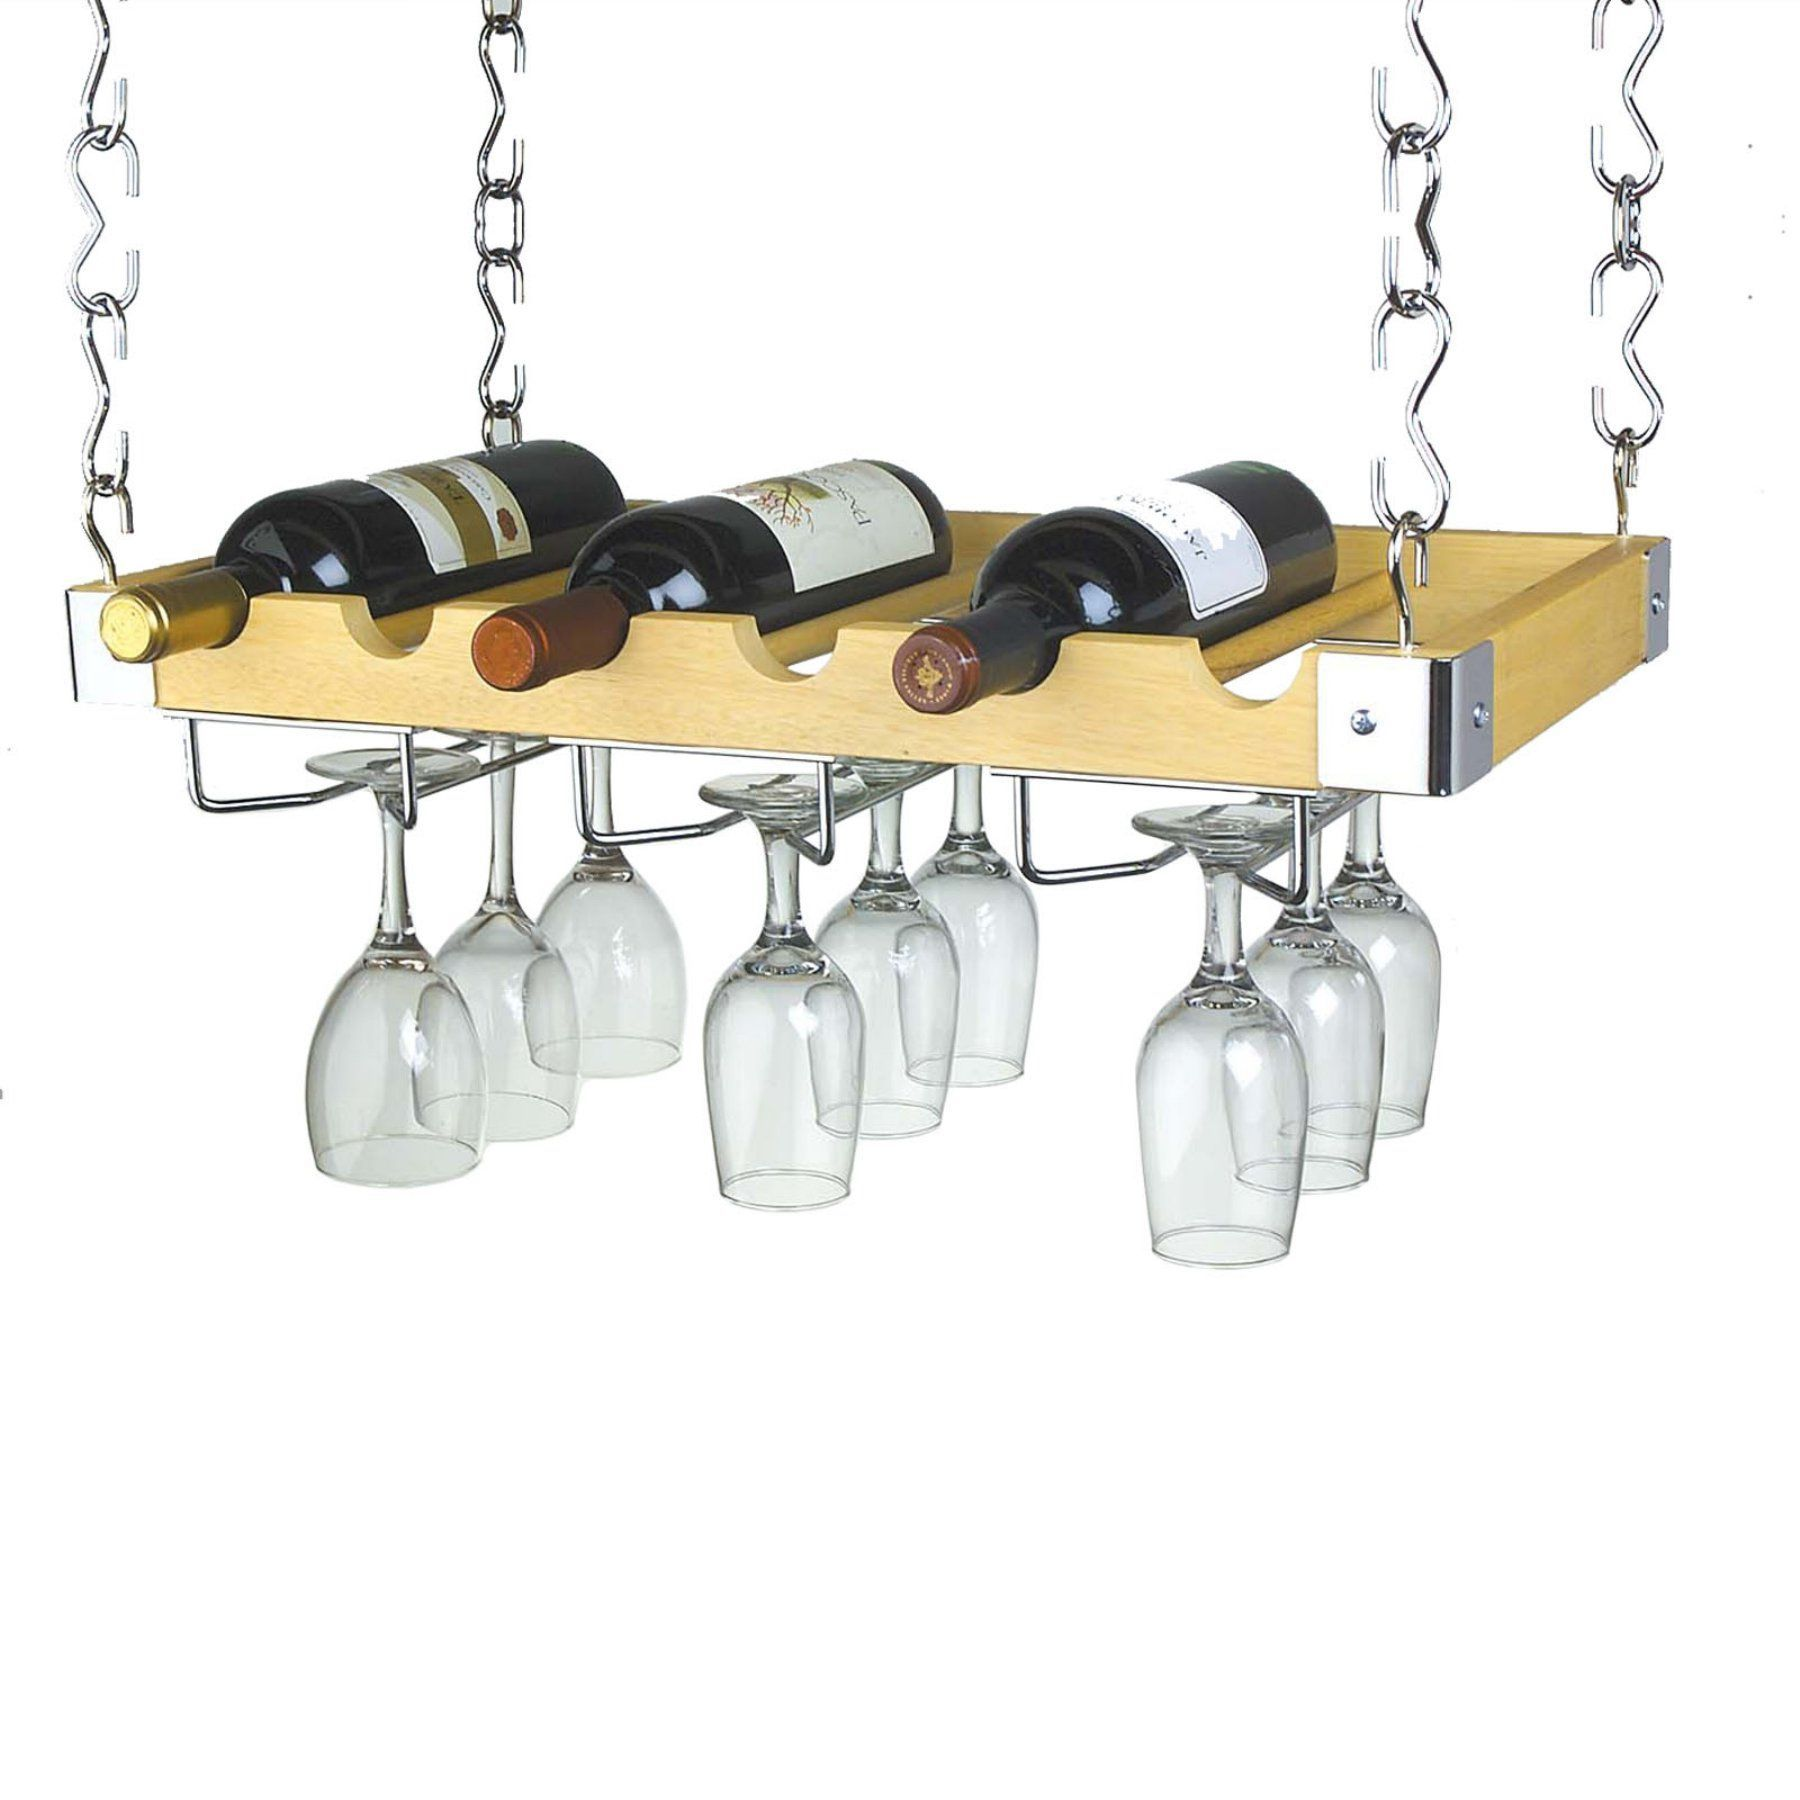 Ceiling Or Wall Mount Wooden Wine Rack Projects To Try Hanging